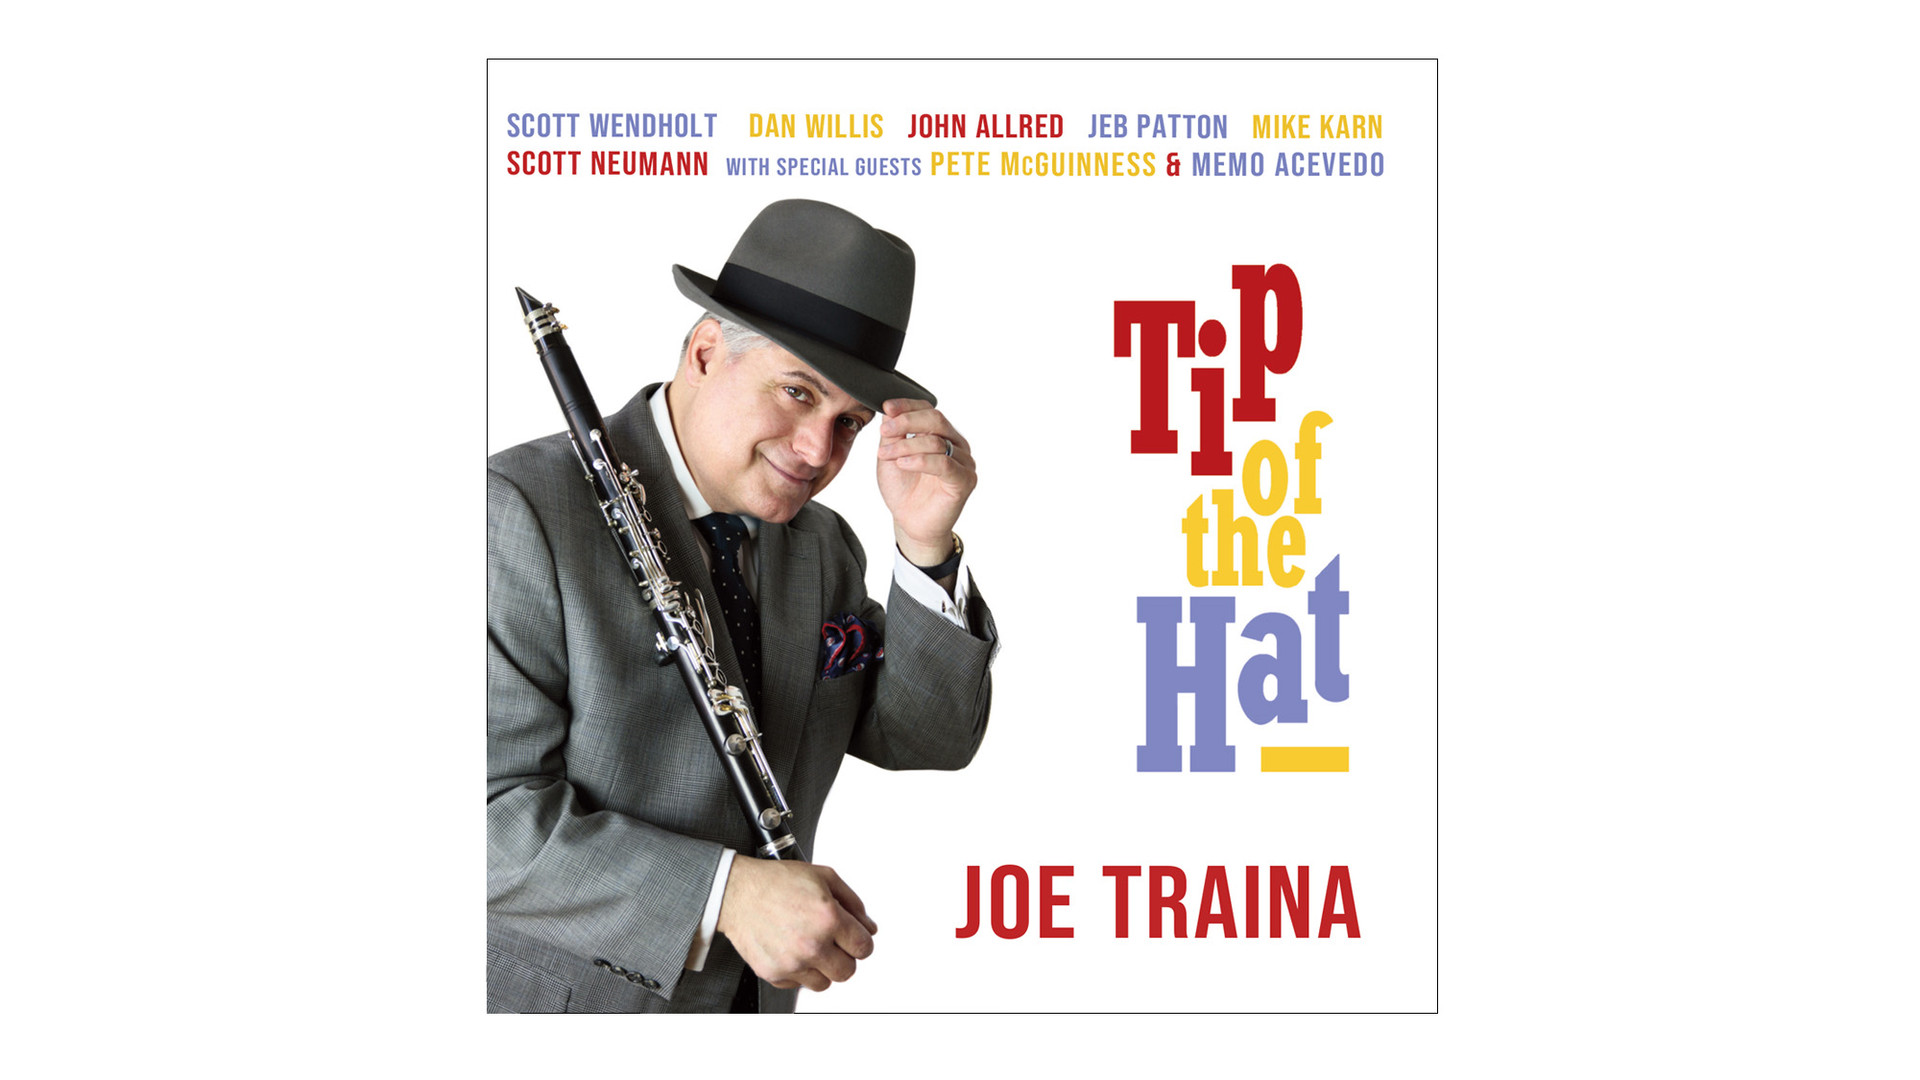 Joe Traina - Tip of the Hat